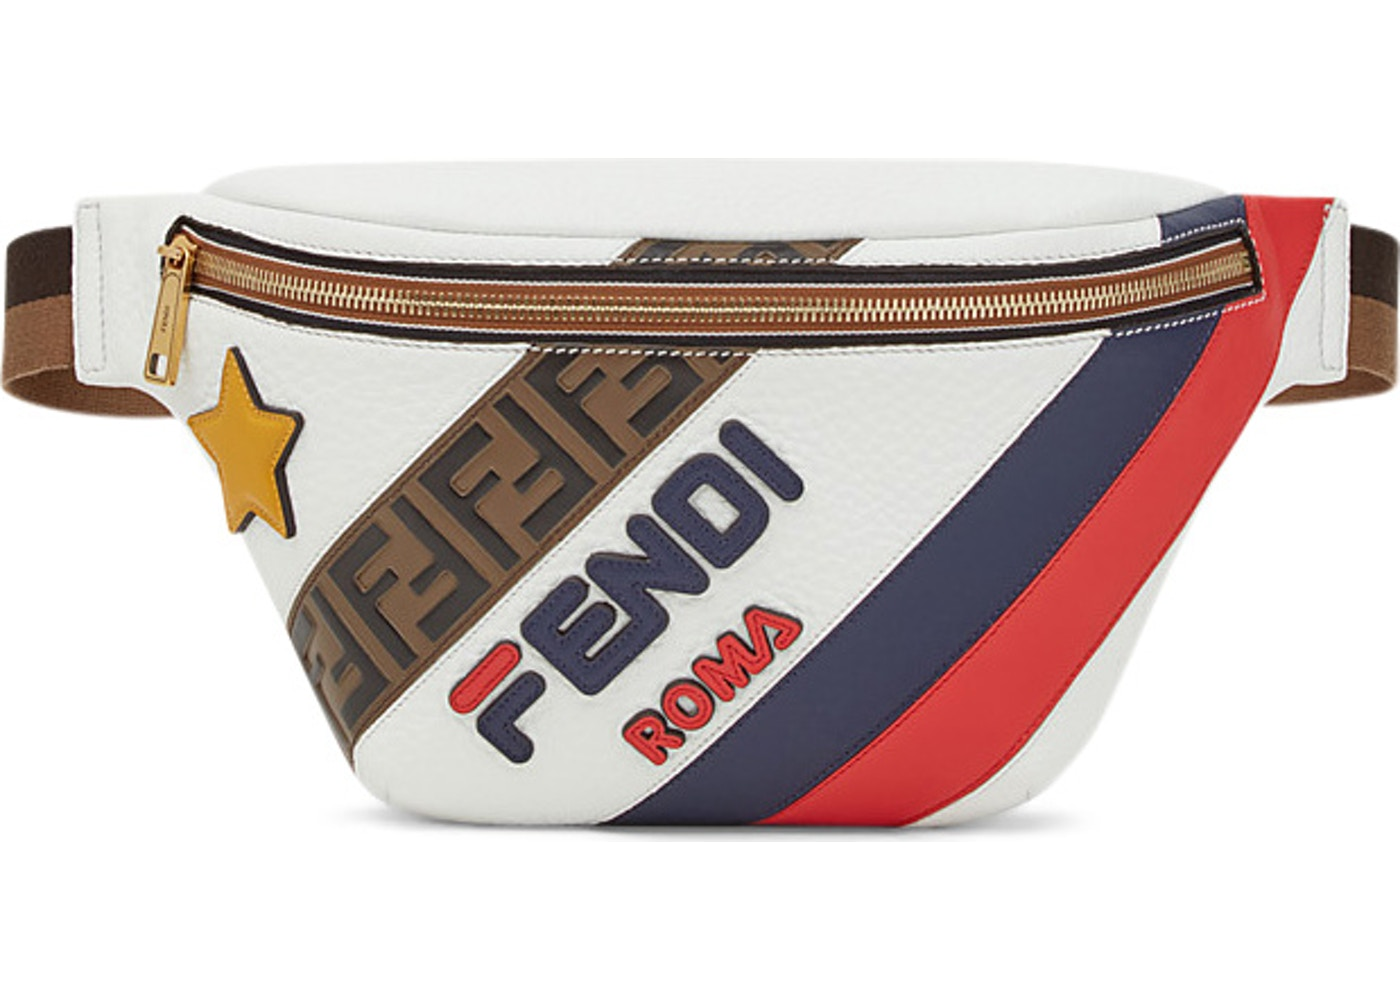 68ae66d6440d Fendi Mania Belt Bag Multicolor. Multicolor